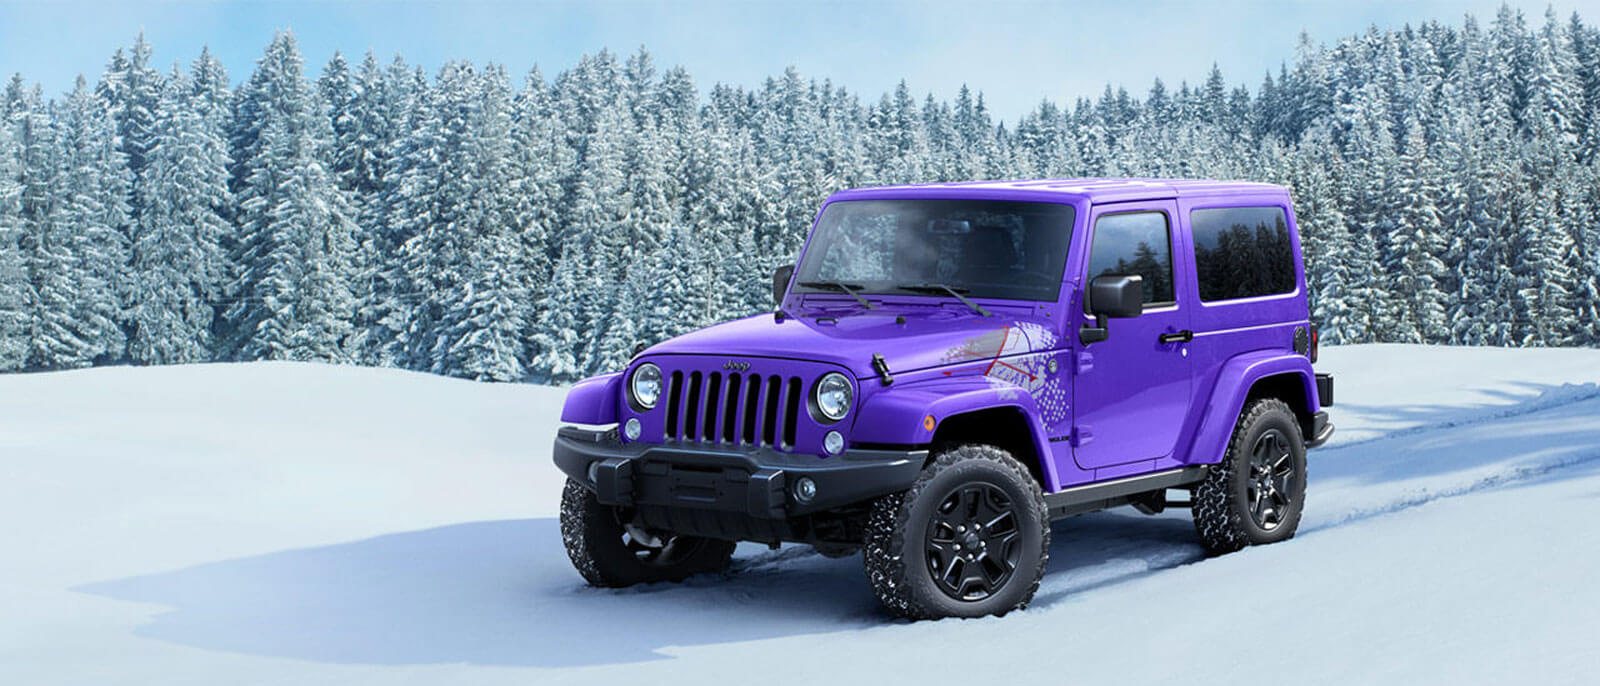 2016 Jeep Wrangler in the snow